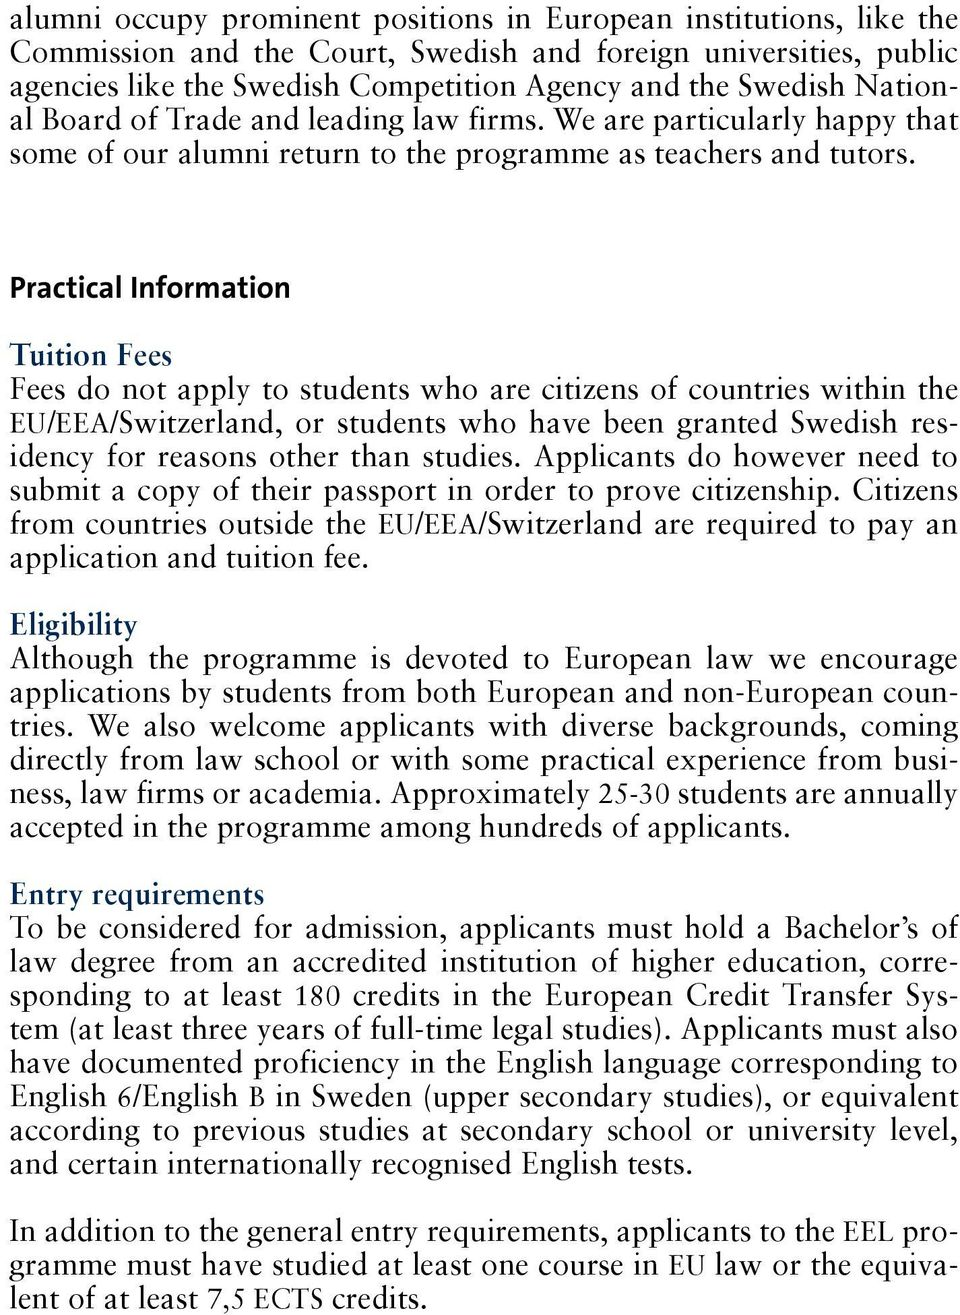 Practical Information Tuition Fees Fees do not apply to students who are citizens of countries within the EU/EEA/Switzerland, or students who have been granted Swedish residency for reasons other